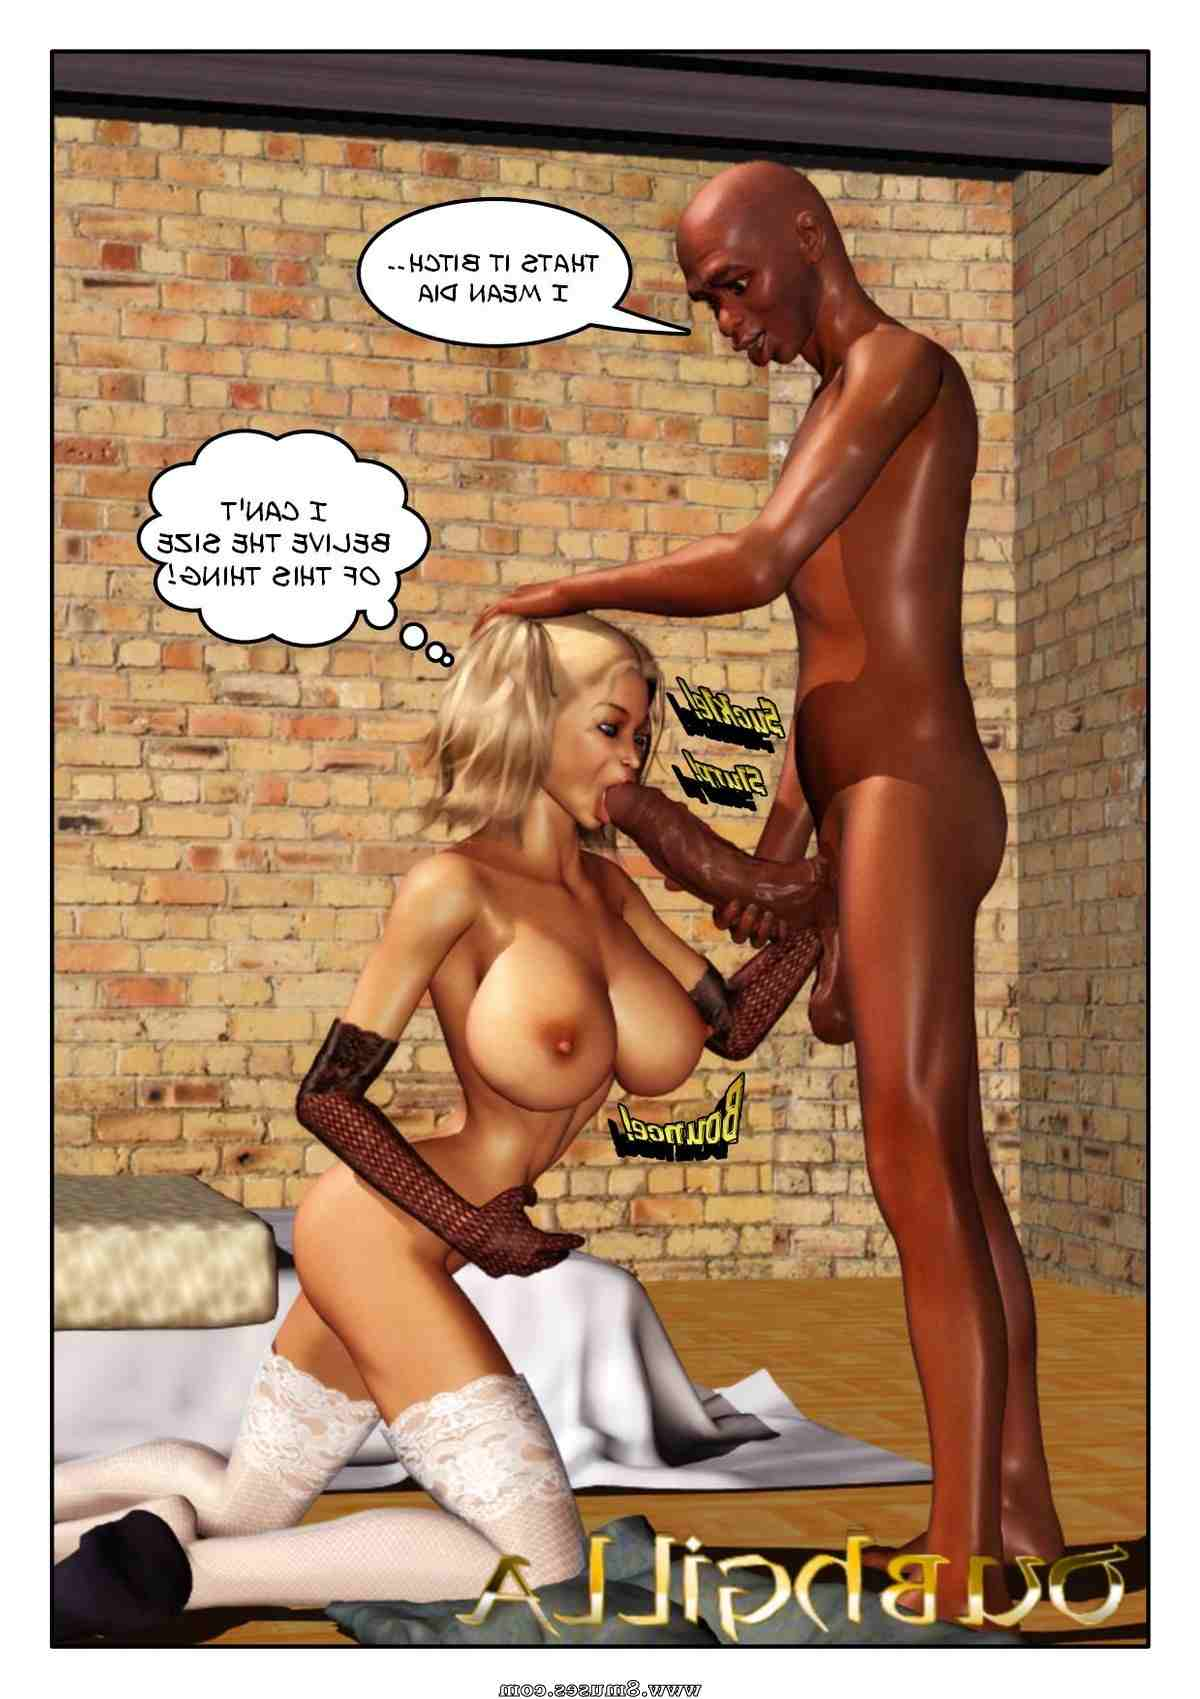 Blacknwhitecomics_com-Comix/BlackonWhite3D/Tim-Dia Tim_Dia__8muses_-_Sex_and_Porn_Comics_14.jpg